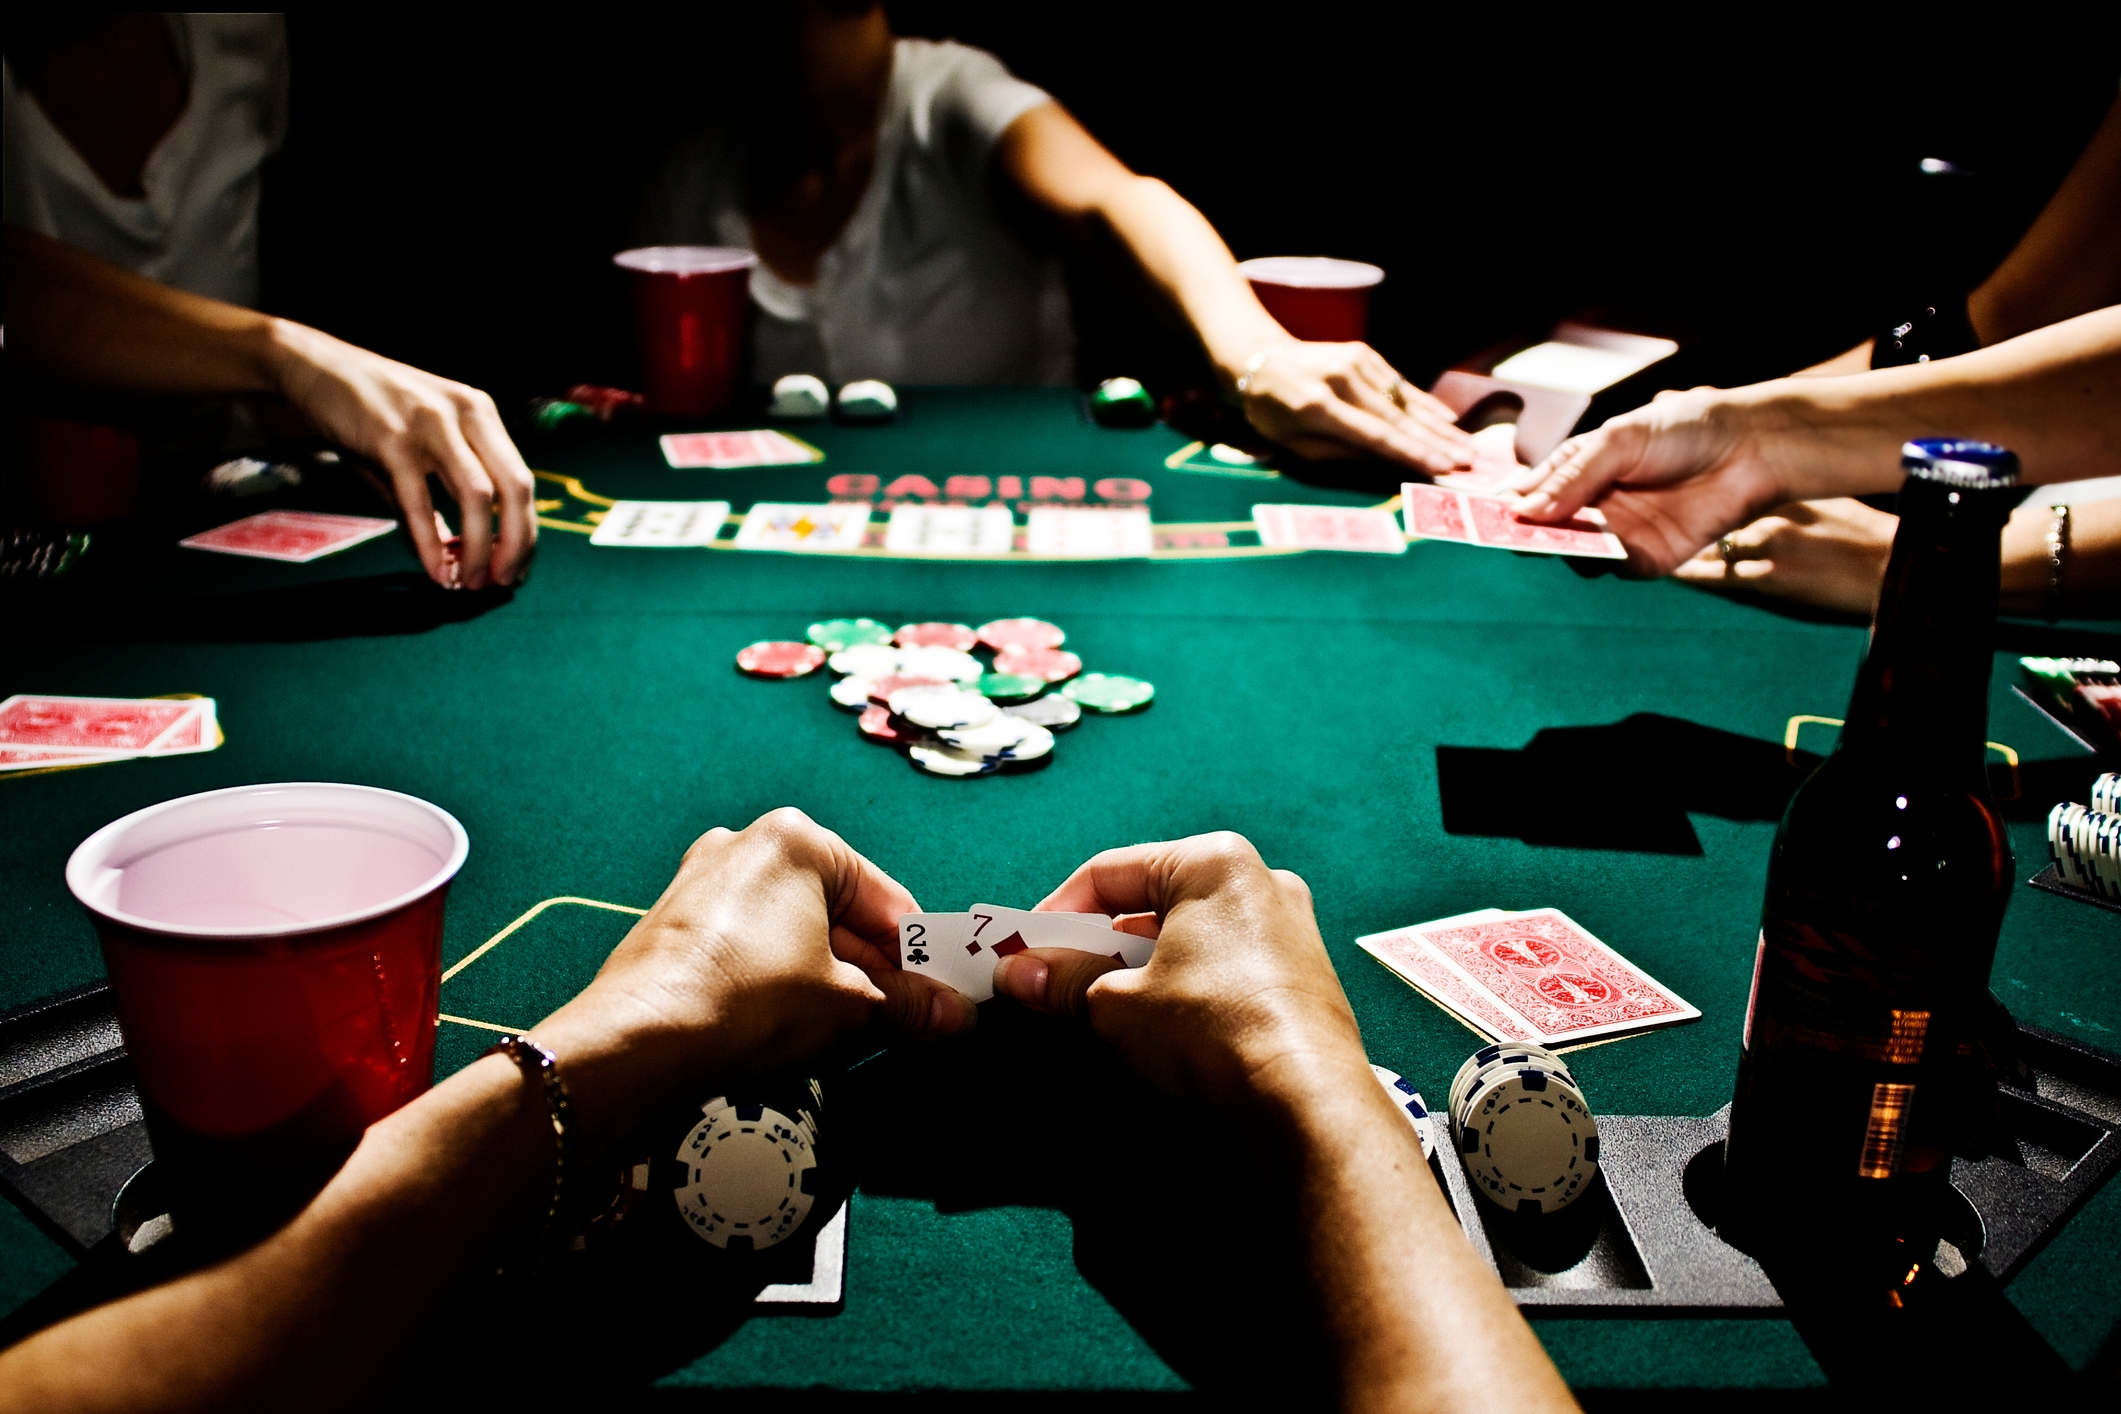 Jeux de casinos internet avec poker hotels around hard rock casino in florida